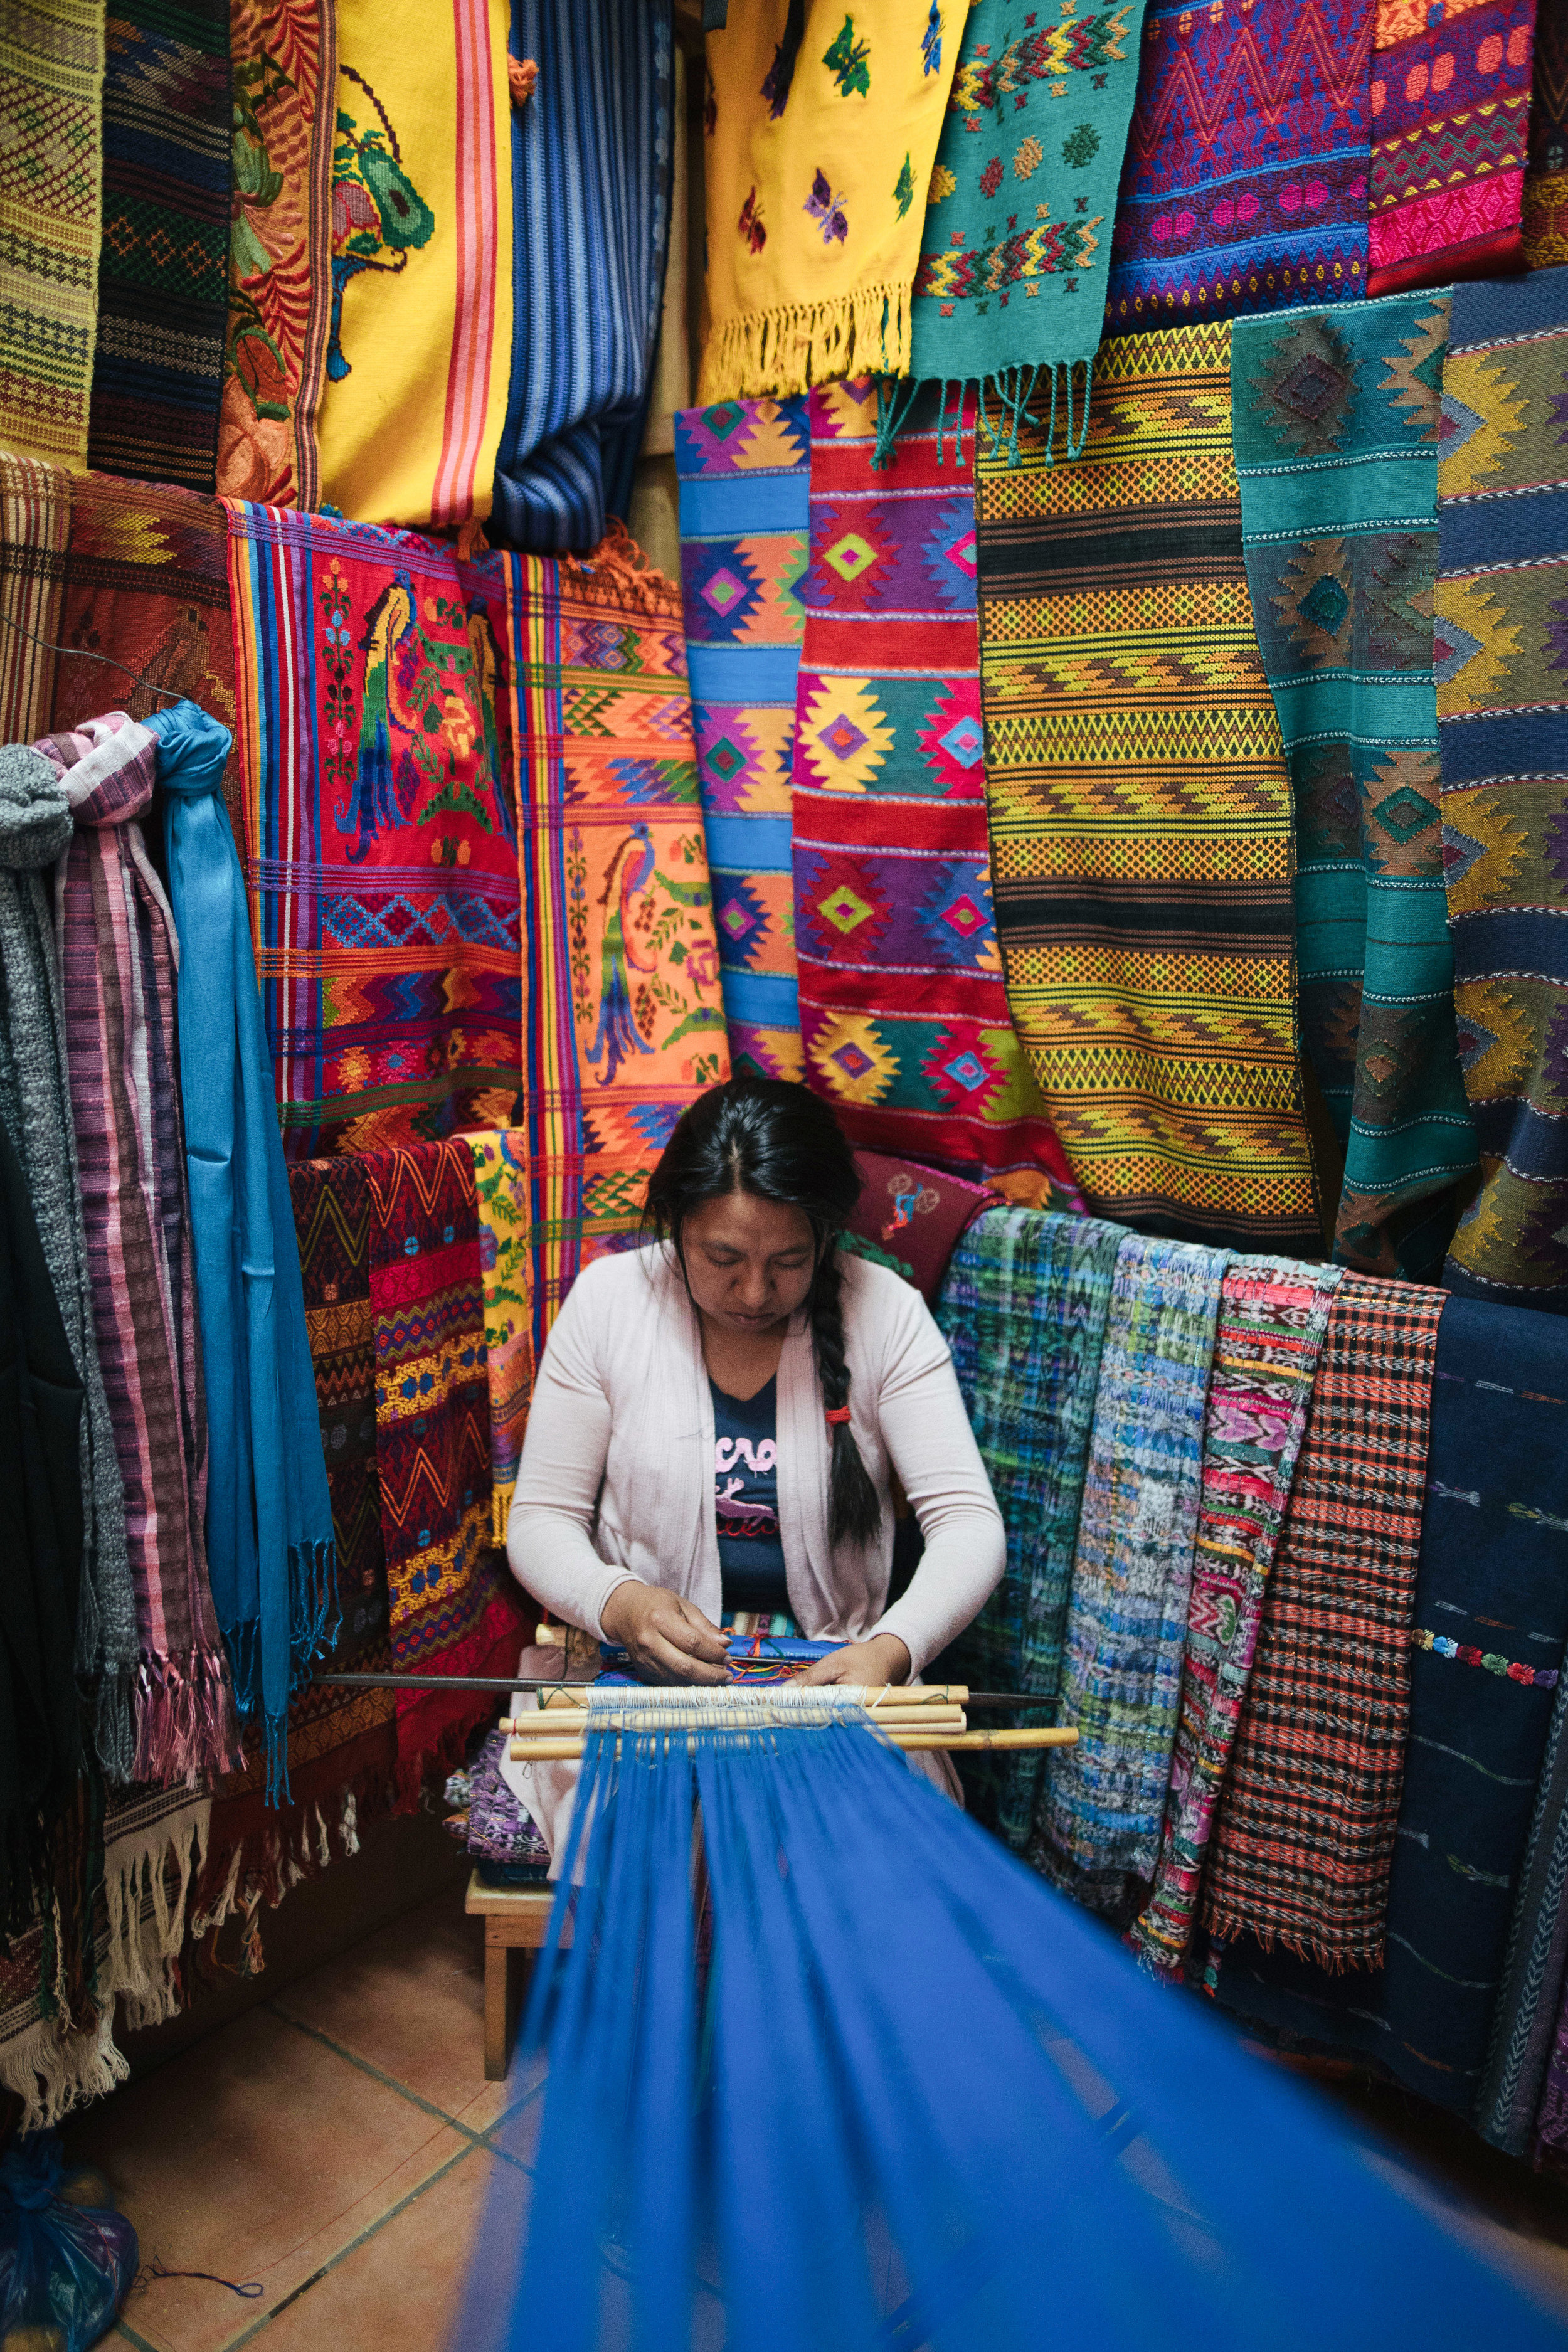 VANESSA MARTINEZ WEAVES USING A BACK-STRAP LOOM IN THE MERCADO DE ARTESANIAS IN SAN ANTONIO AGUAS CALIENTES, GUATEMALA ON JAN. 9. MARTINEZ WOVE HER FIRSTHUIPIL WHEN SHE WAS 7-YEARS-OLD